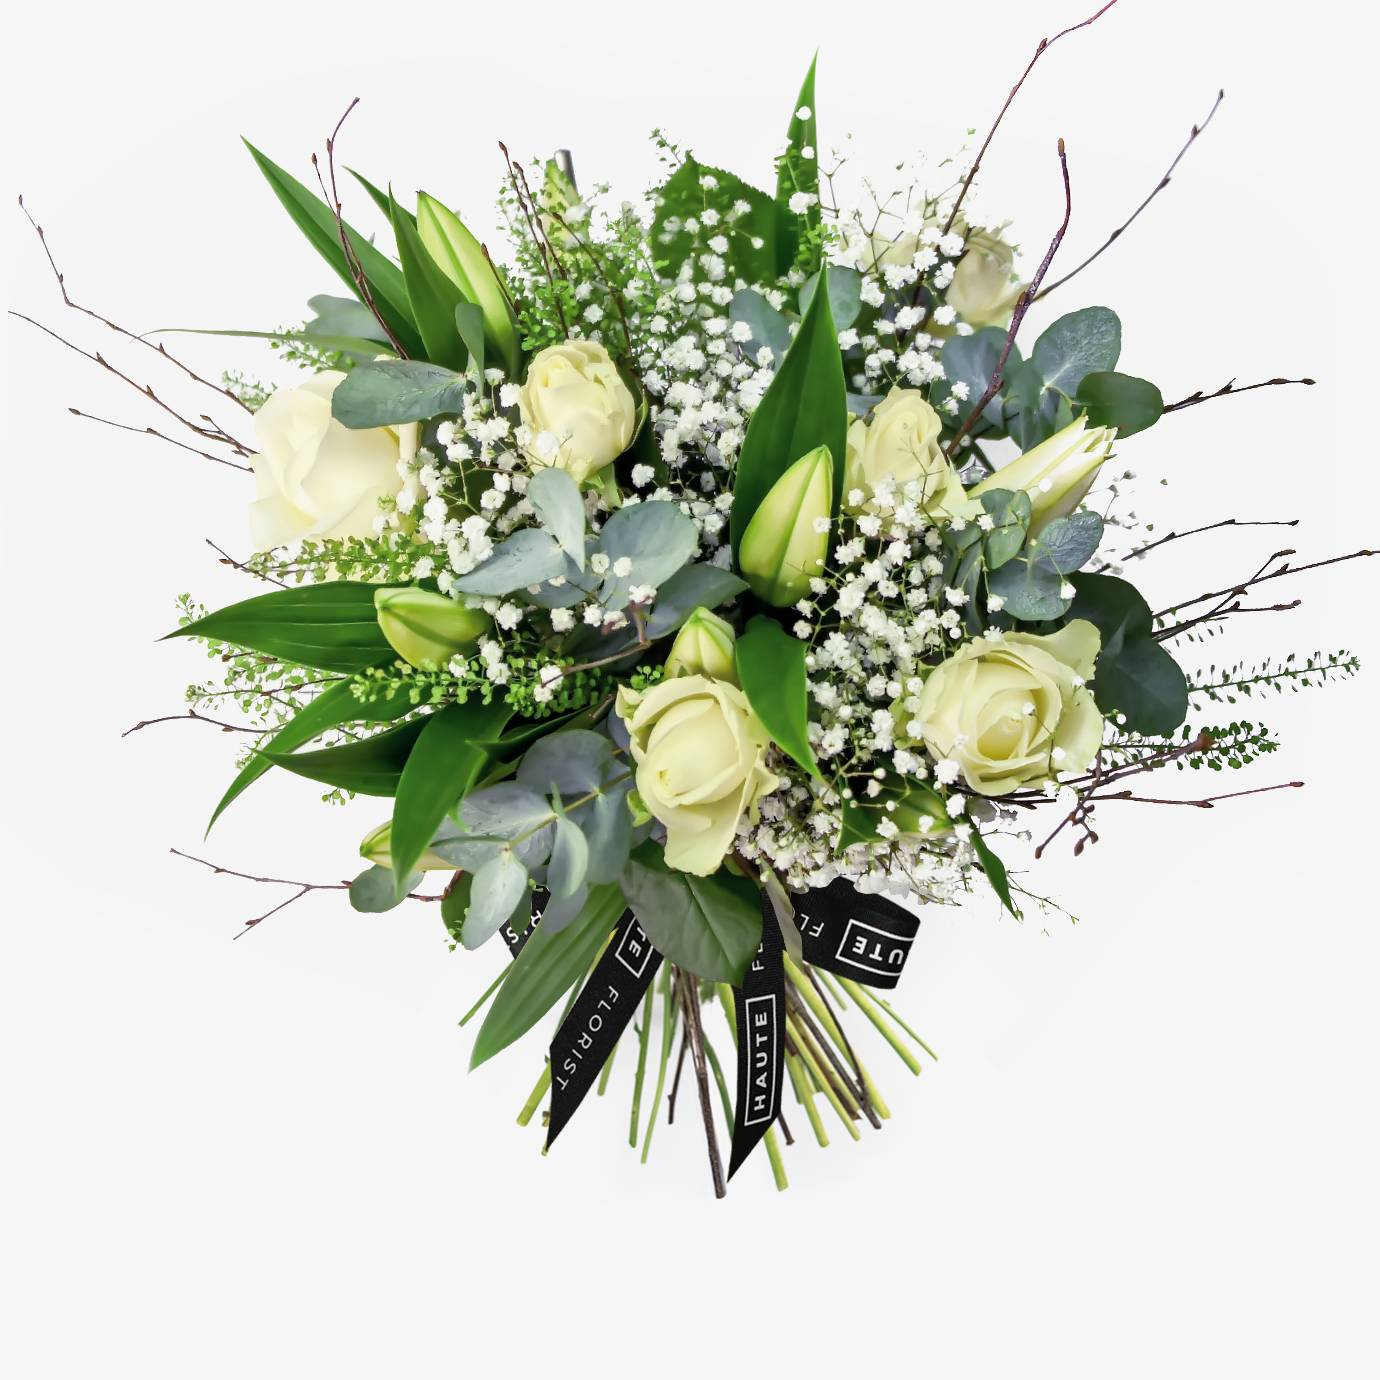 Haute Florist Purity - Flower Delivery - Sympathy Flowers - Next Day Flowers - Luxury Flowers - Luxury Flower Delivery